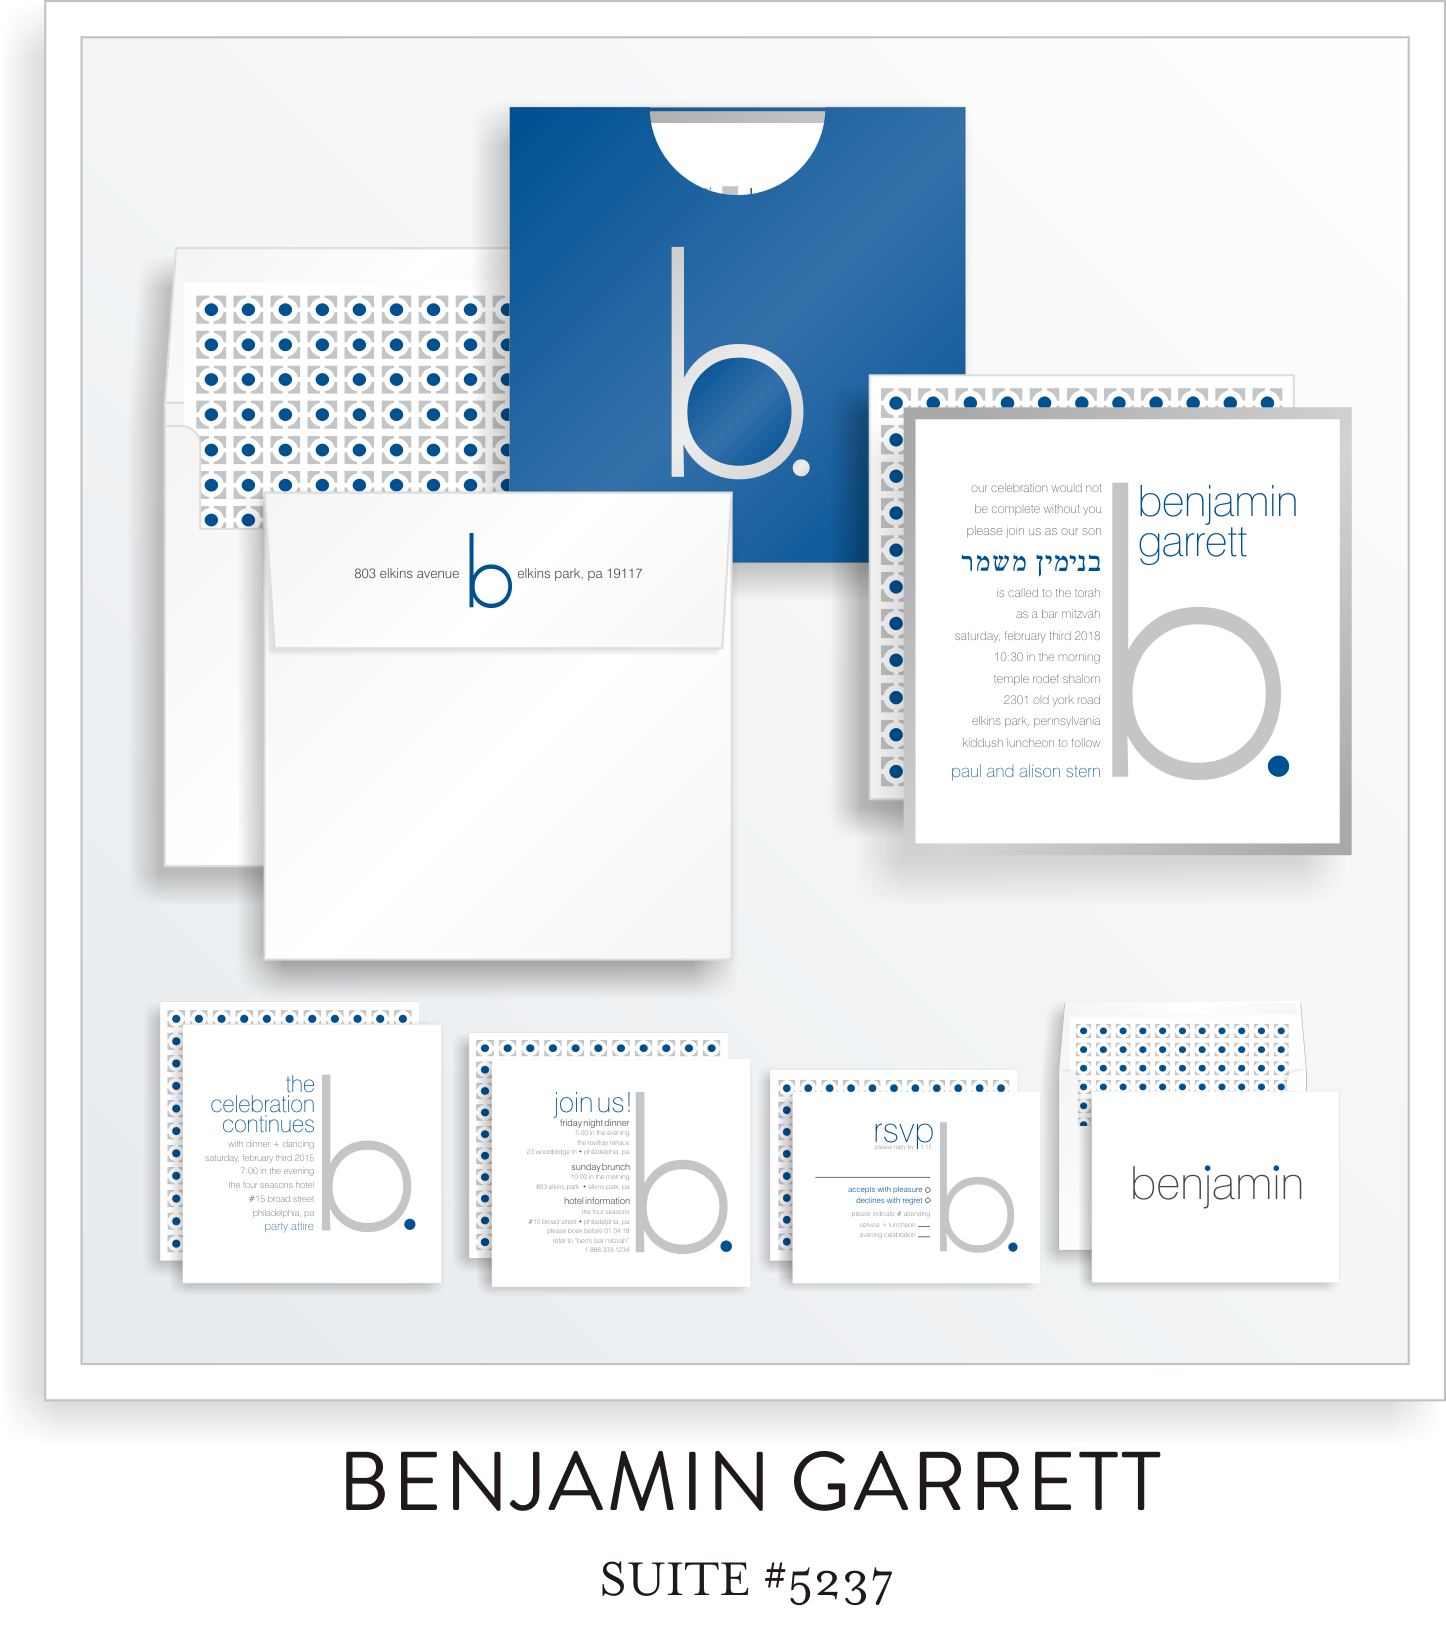 Copy of Bar Mitzvah Invitation Suite 5237 - Benjamin Garrett